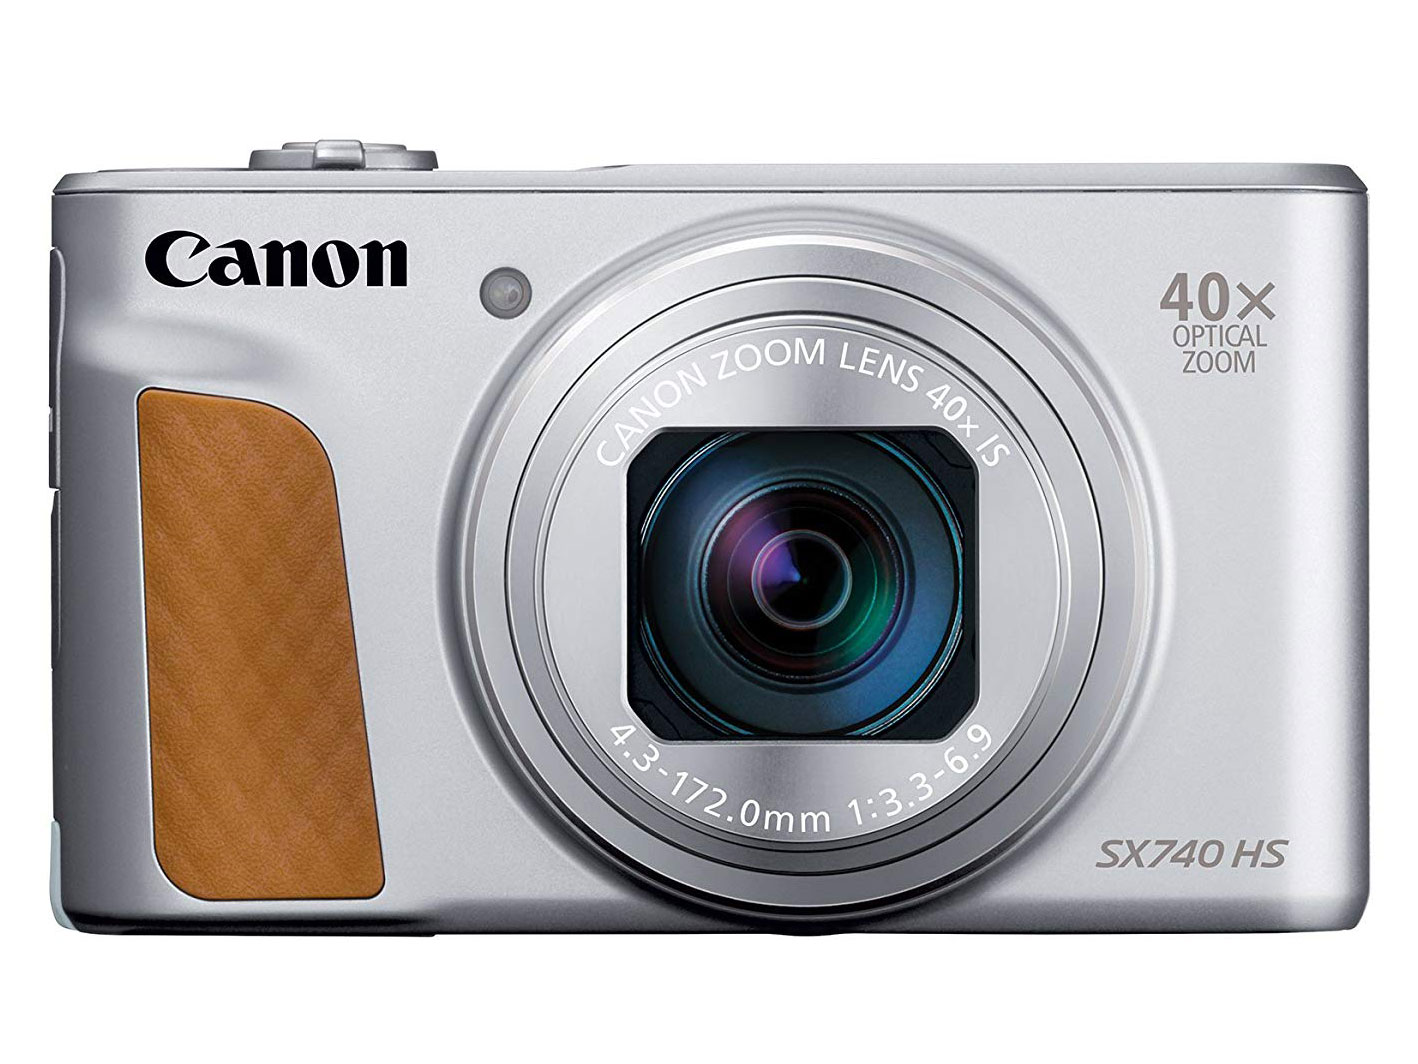 Compact Canon PowerShot SX740 HS offers 40x zoom lens and 4K video